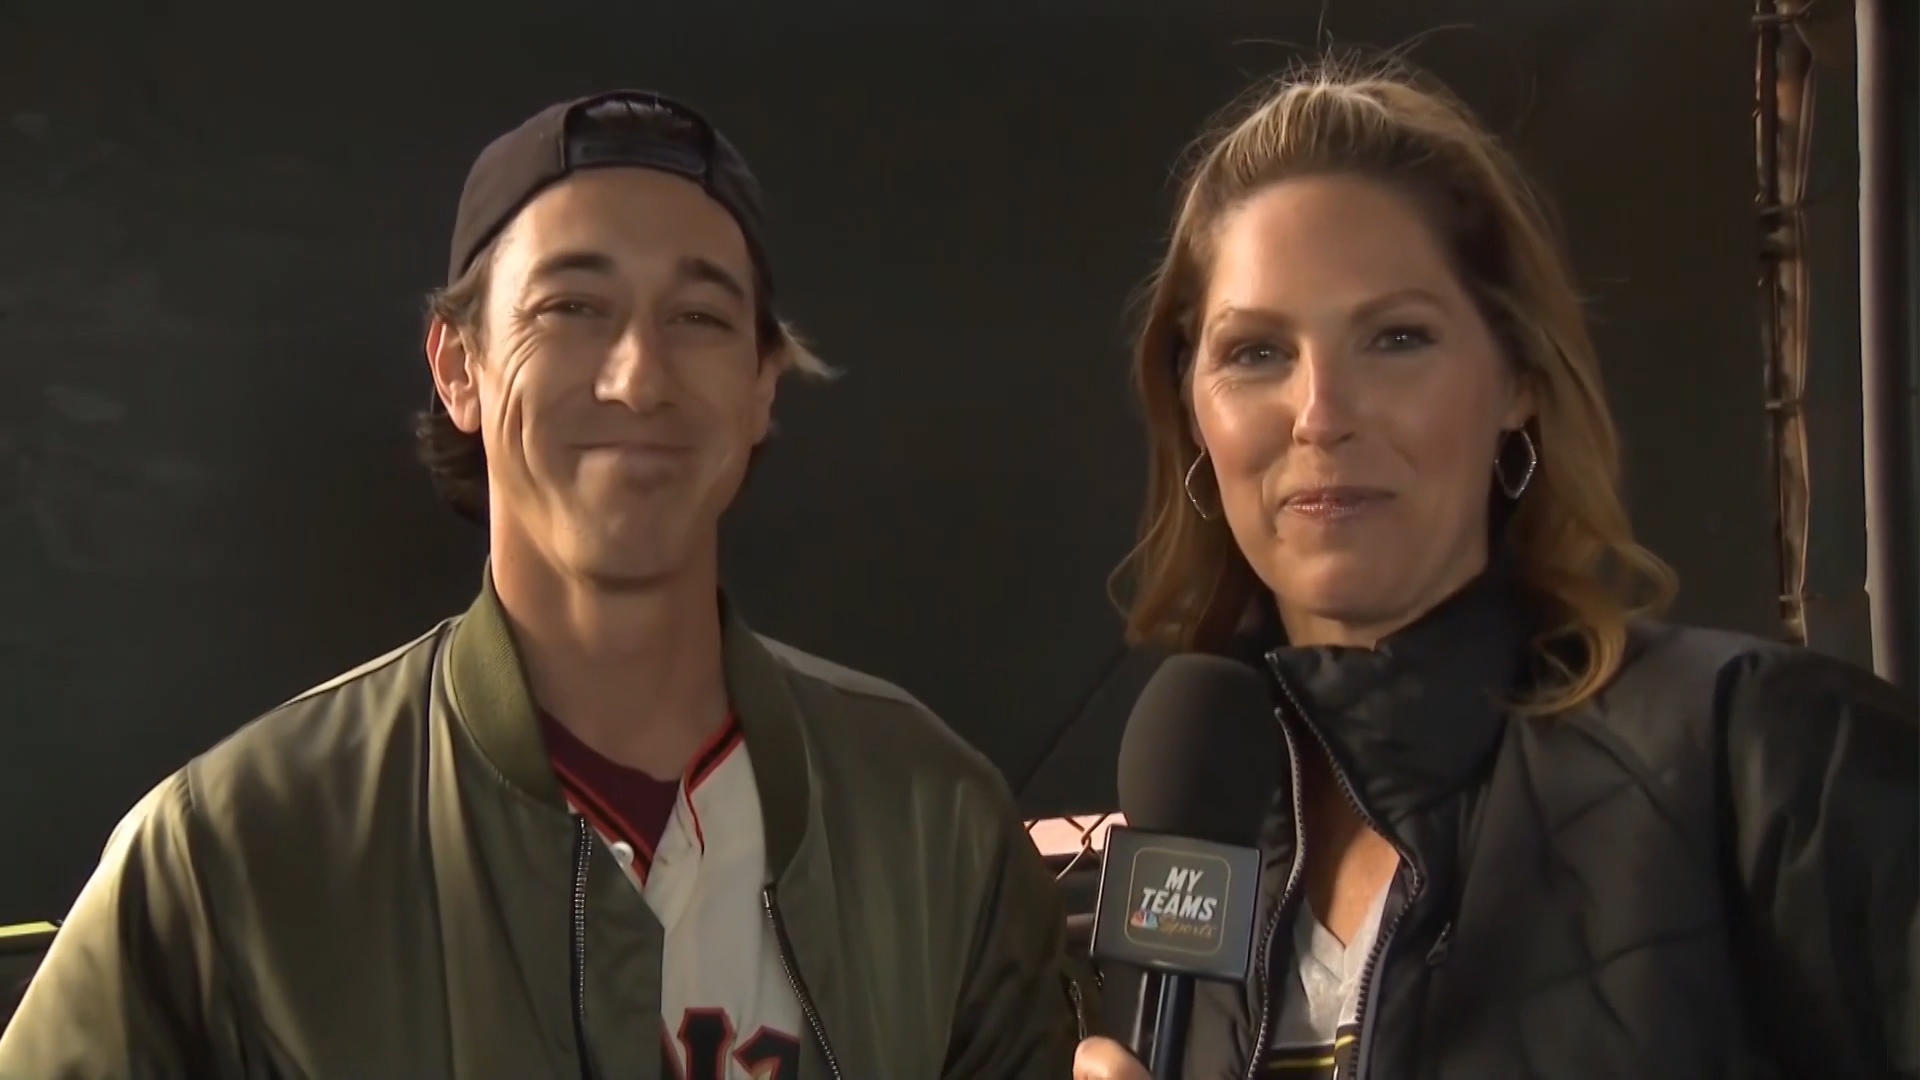 Tim Lincecum reveals he hasn't formally retired from baseball